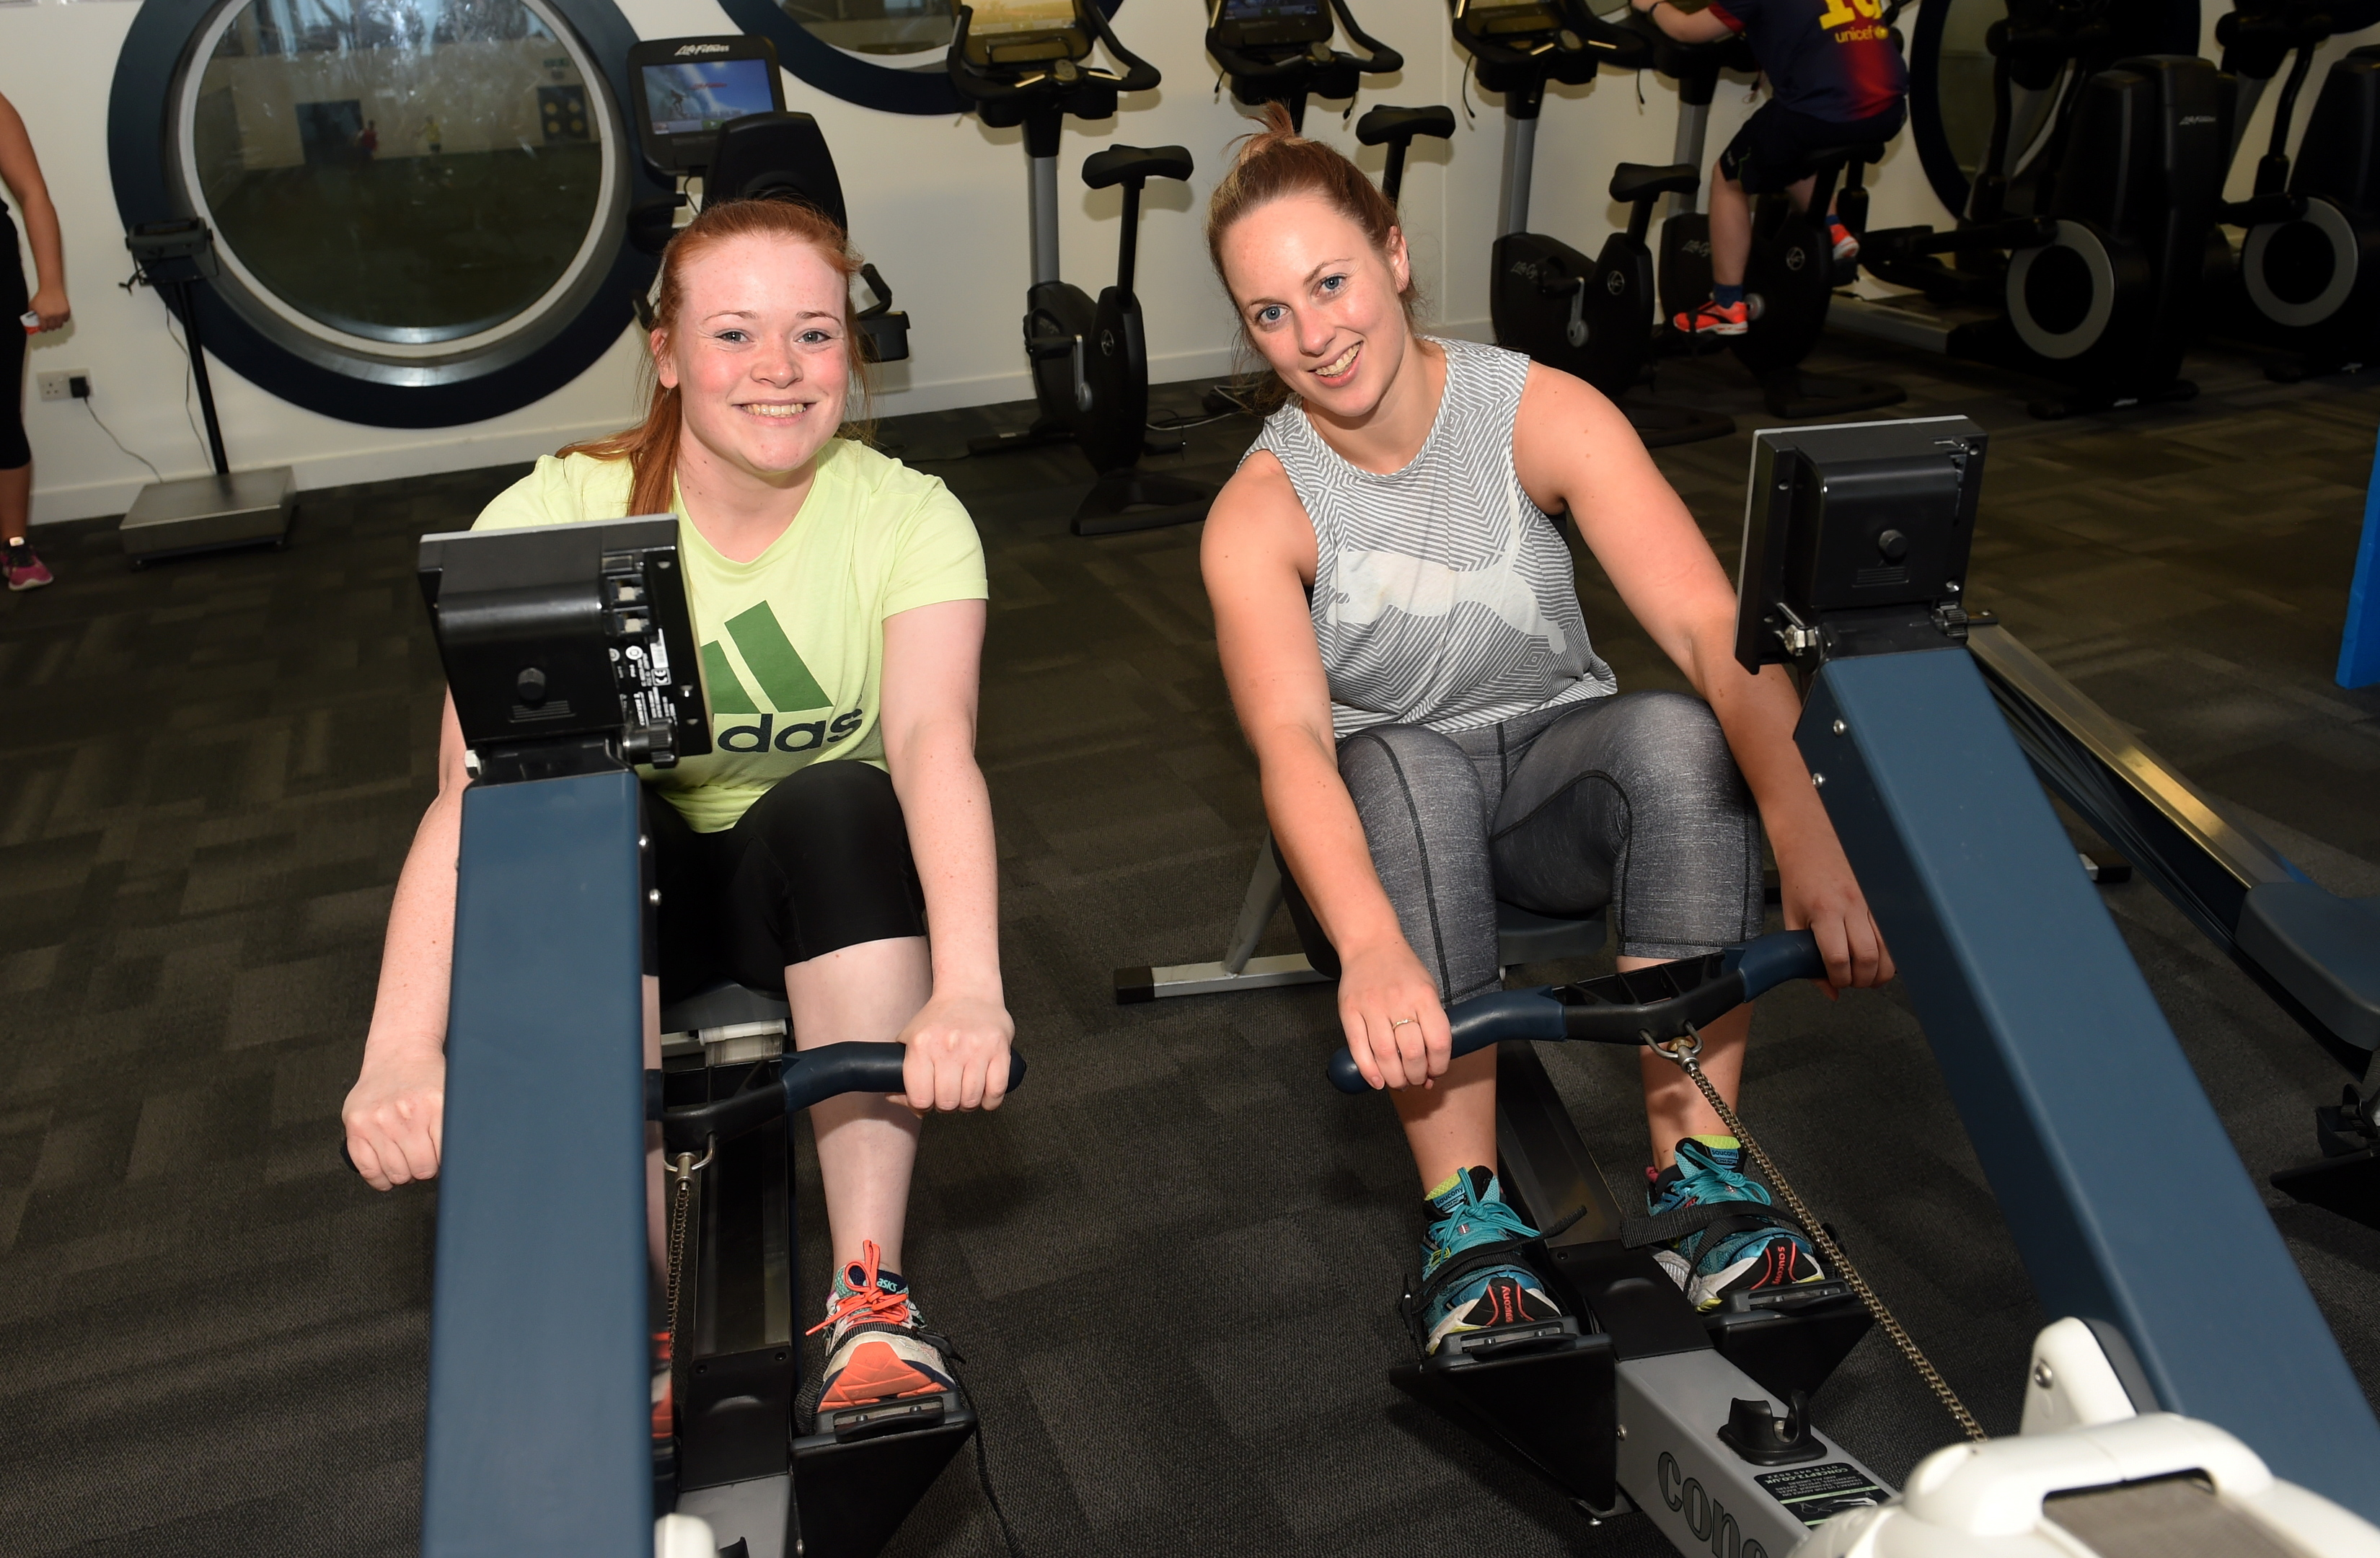 Victoria McIntosh, left, and Becci Harris said exercising together boosts their workouts.